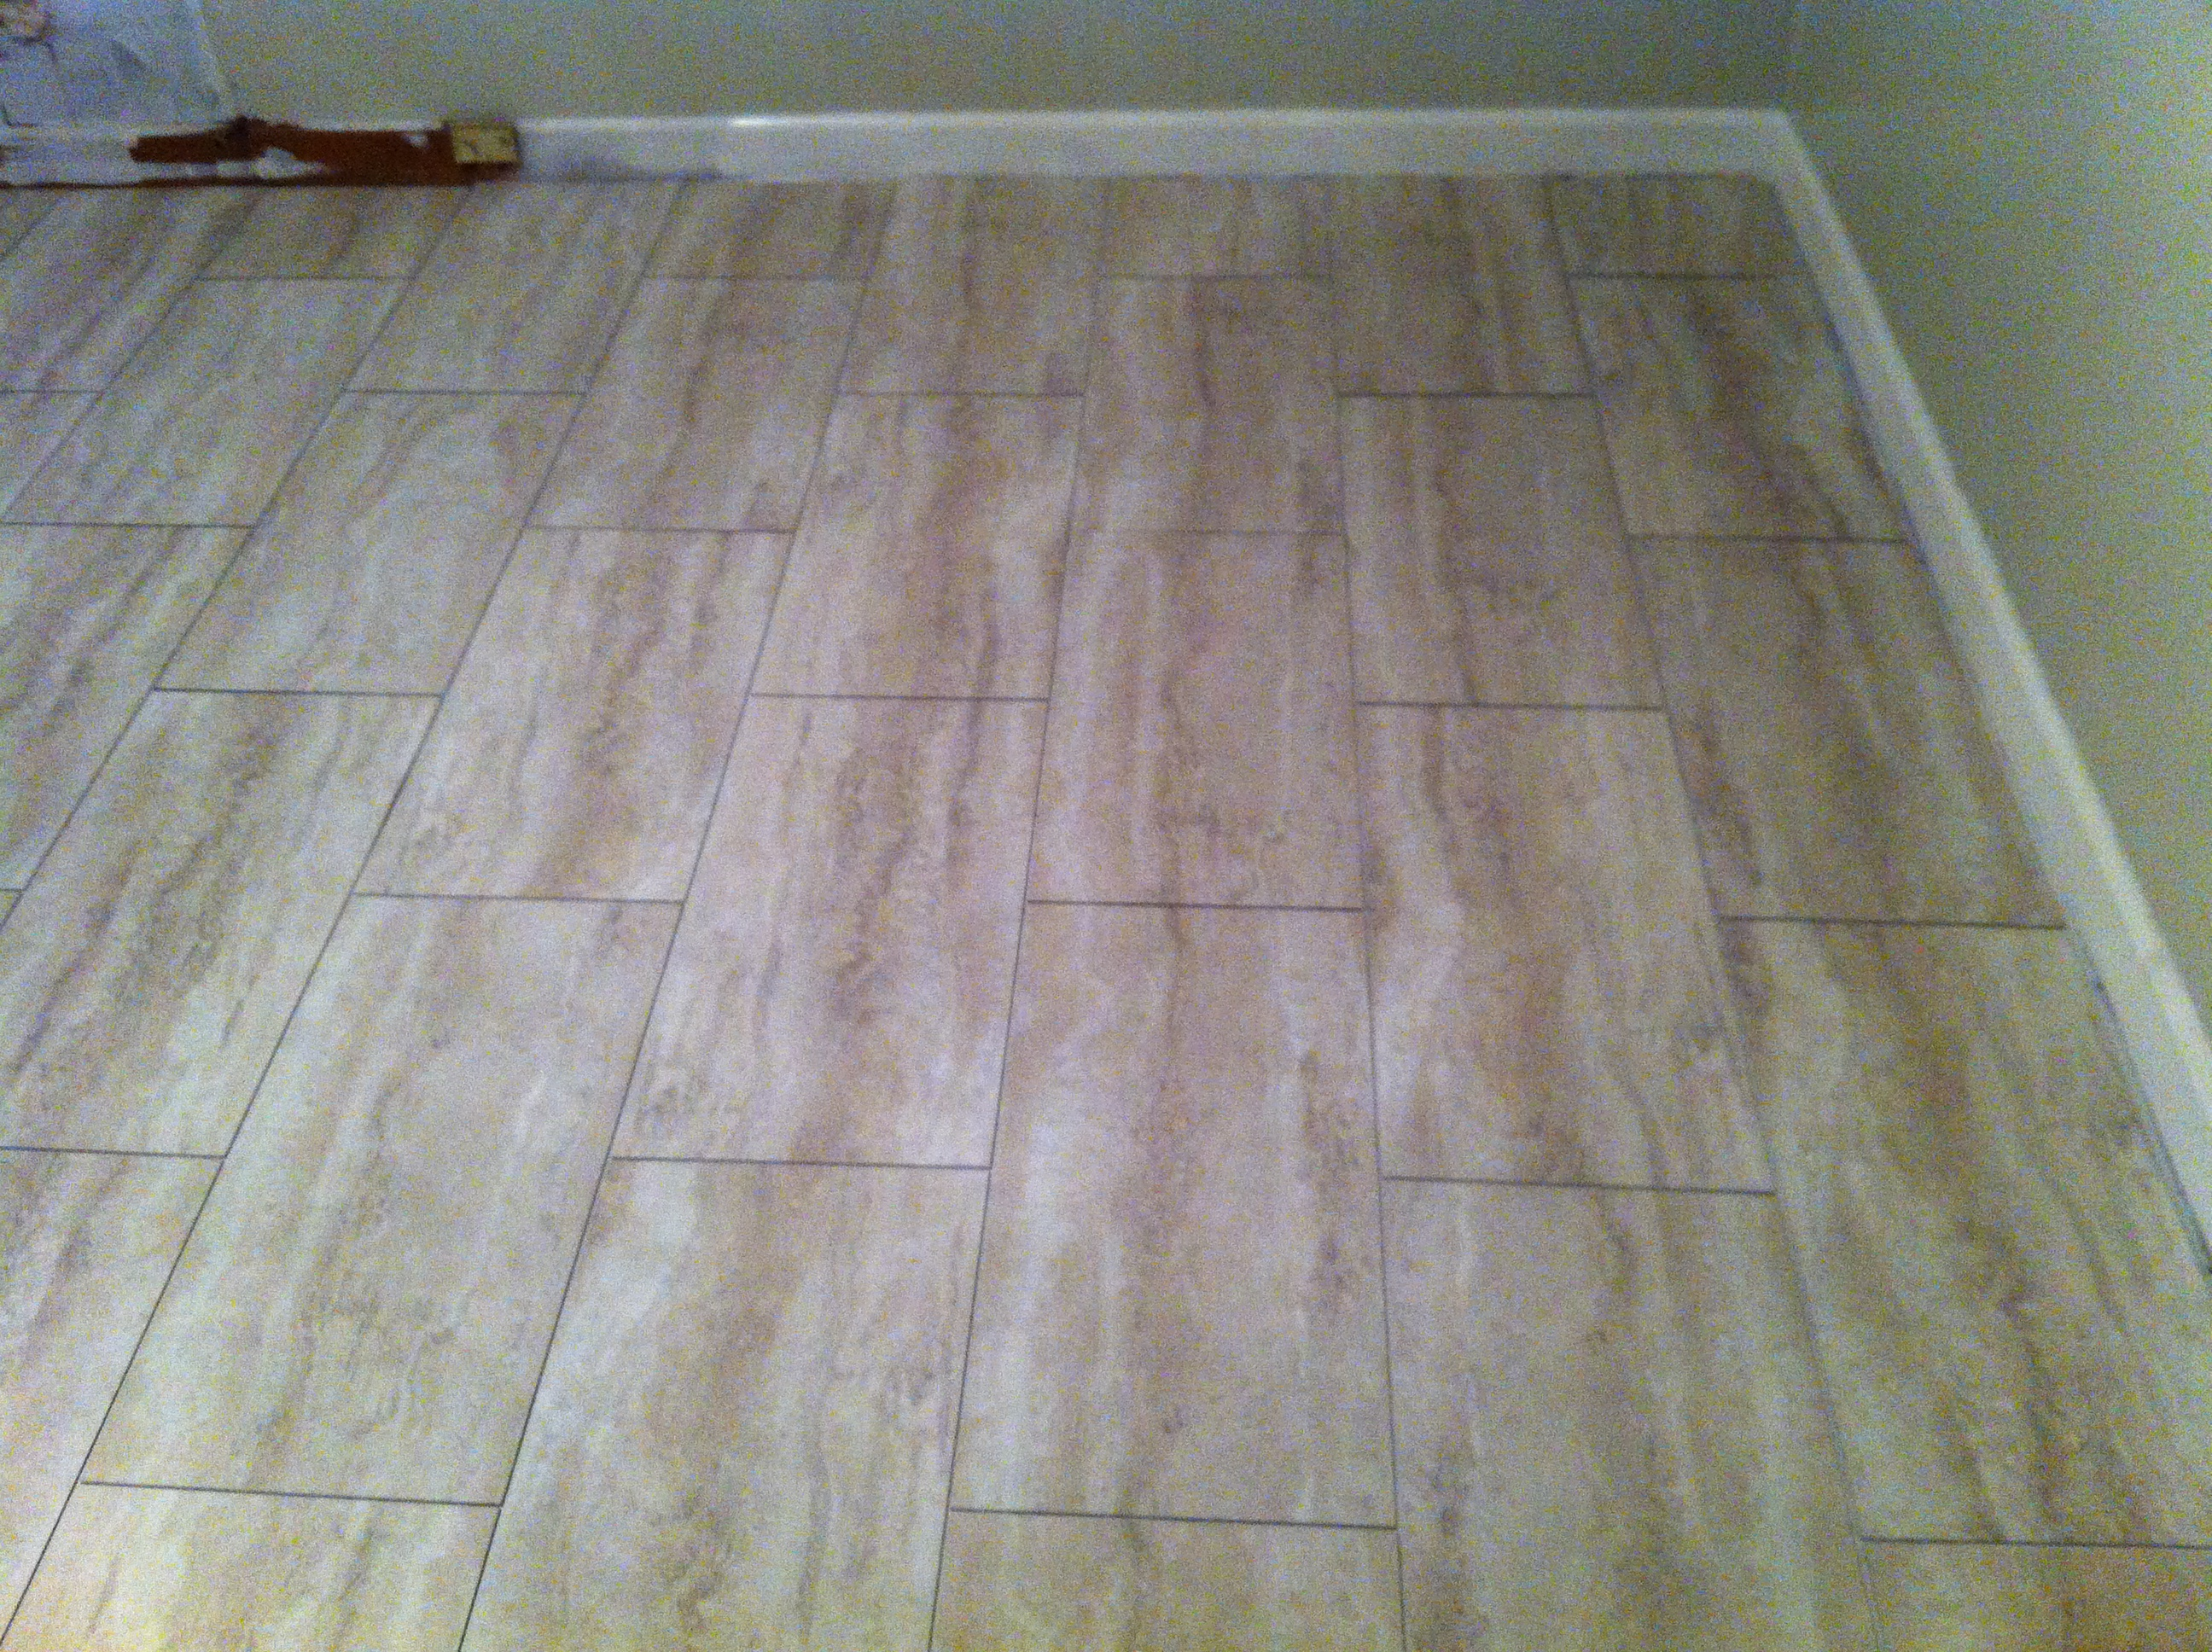 Groutable vinyl tile walkthecreativepath Vinyl tile floor